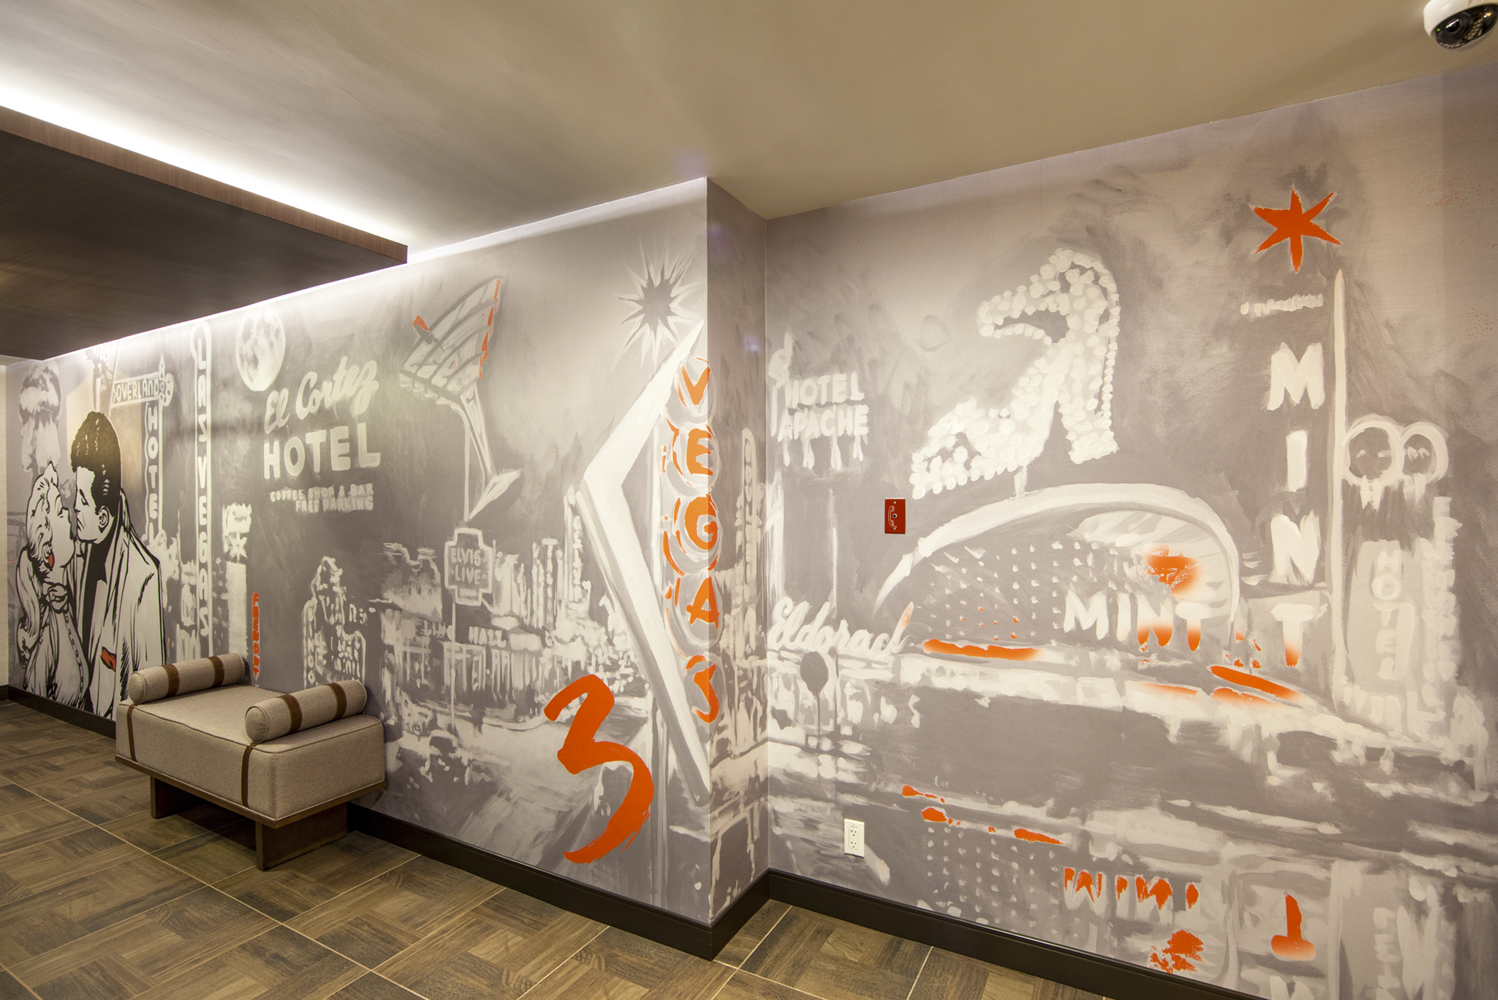 El Cortez Hotel & Casino, located in the heart of Downtown Las Vegas, started the renovation of 73 of its Tower Rooms.